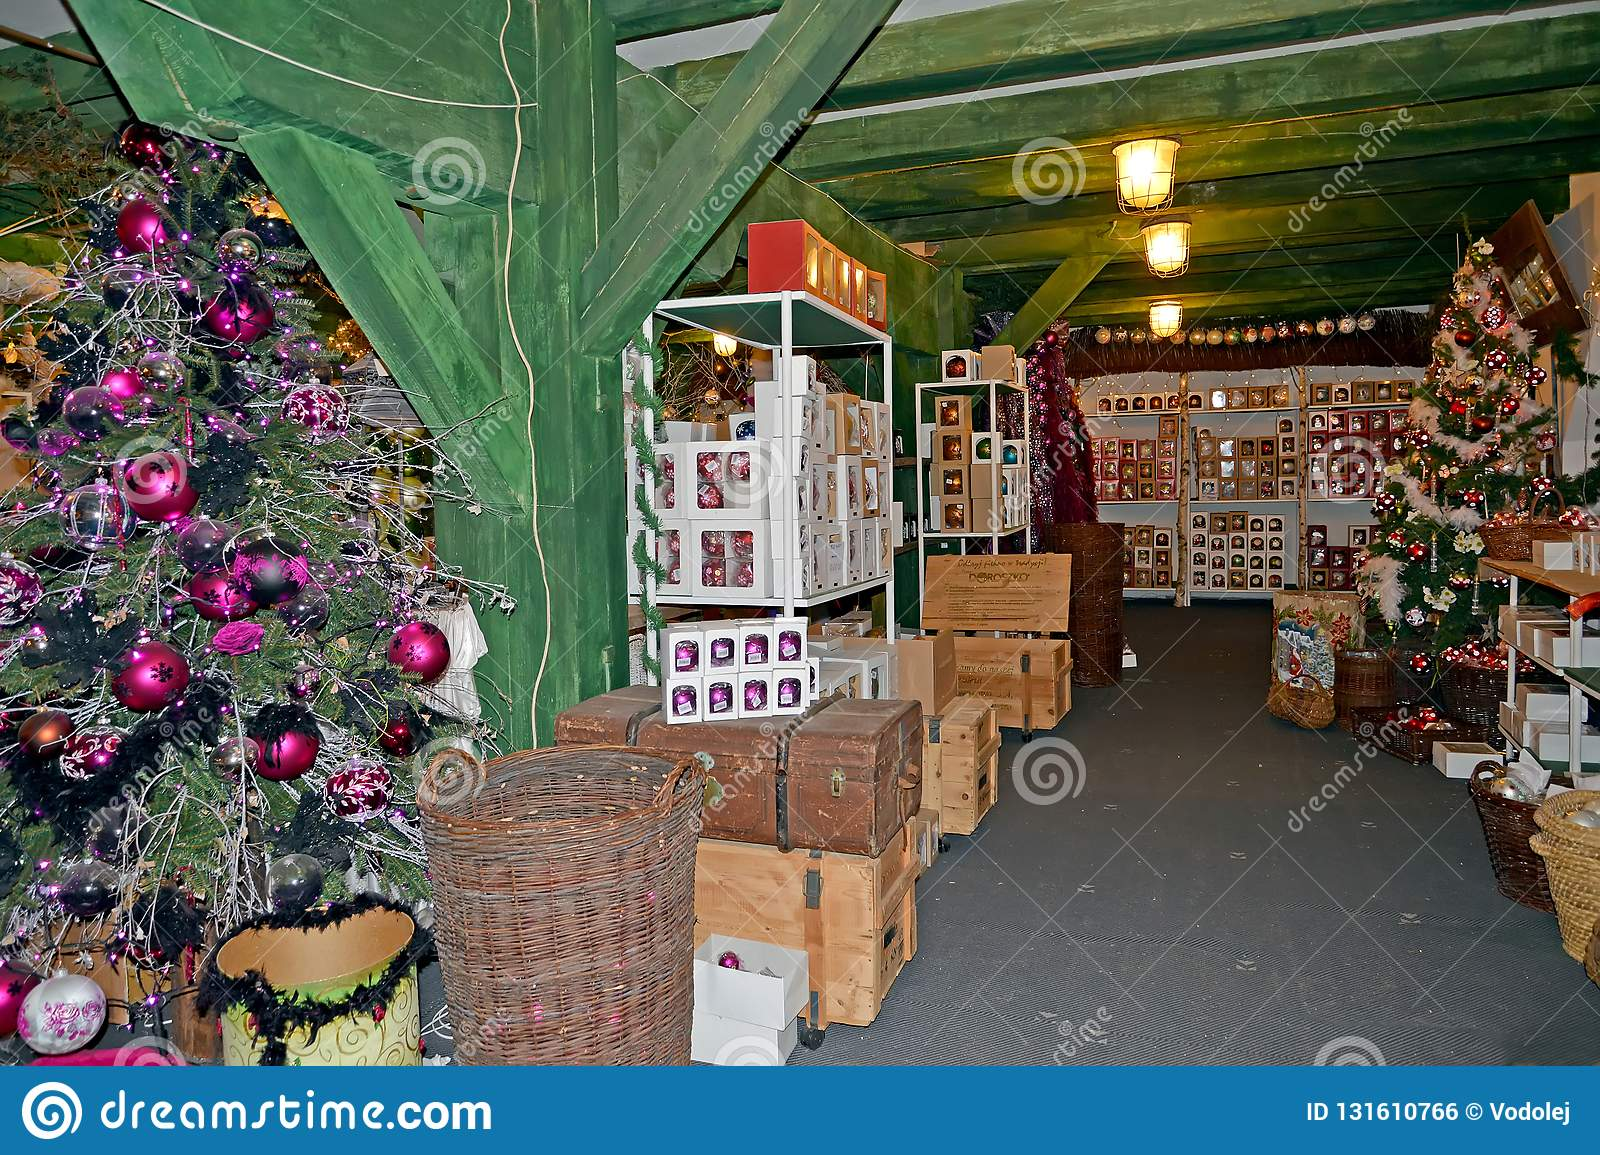 Kentshin Poland A Christmas Tree Decorations Warehouse Shop In